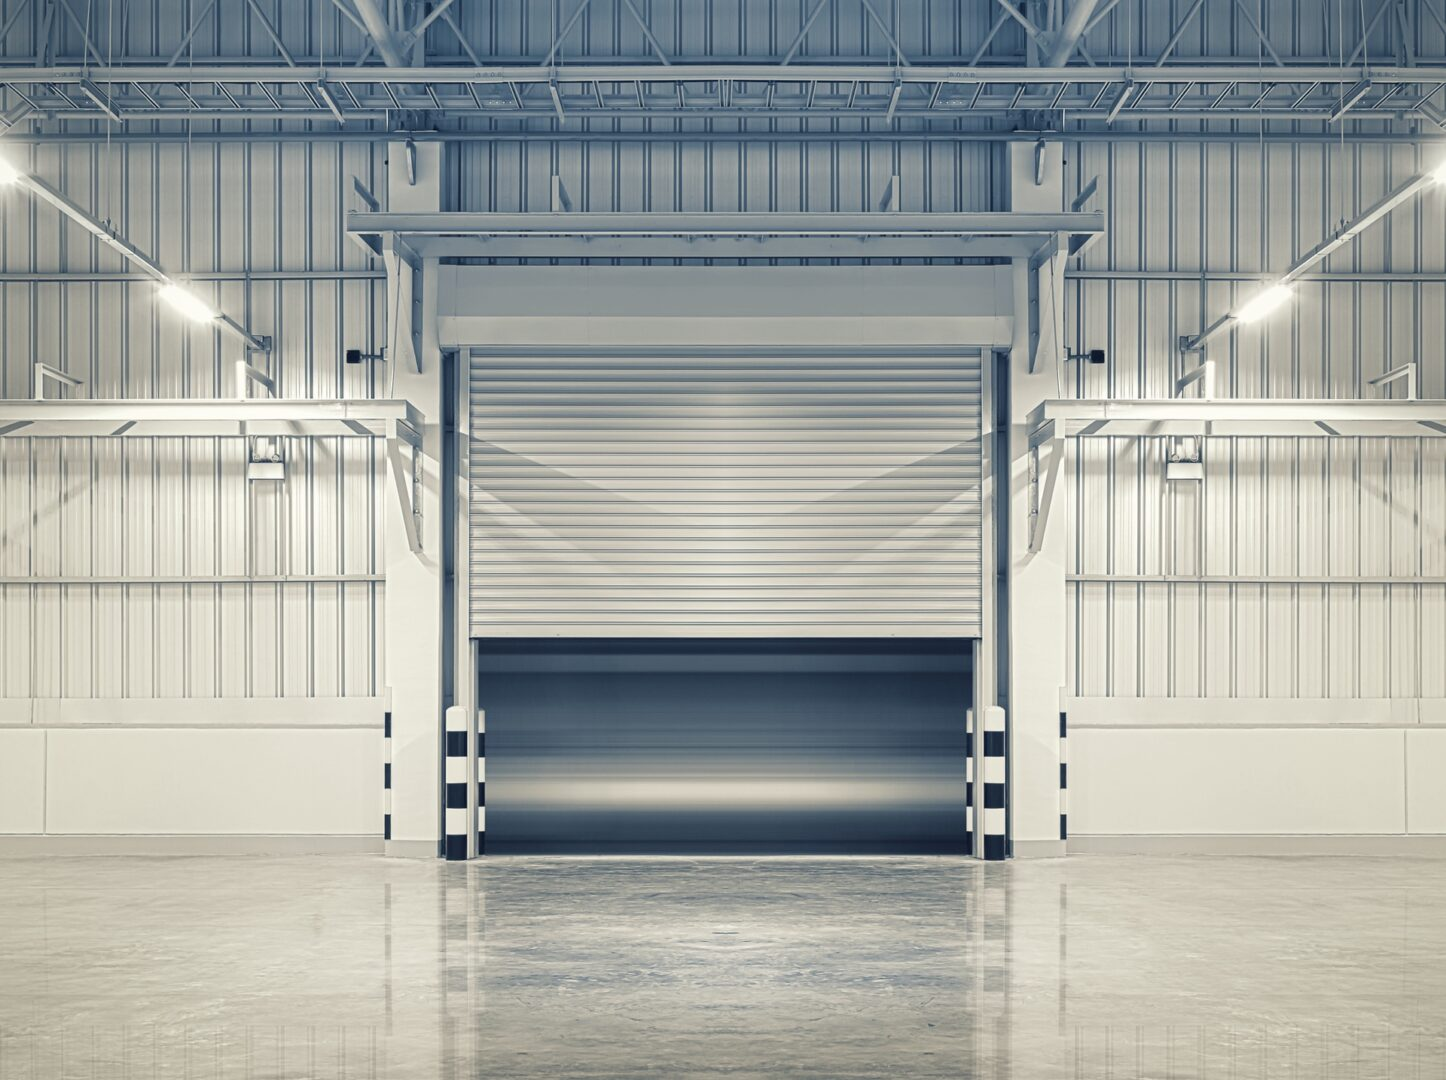 Roller door or roller shutter using for factory, warehouse or hangar. Industrial building interior consist of polished concrete floor and half open door for product display or industry background.